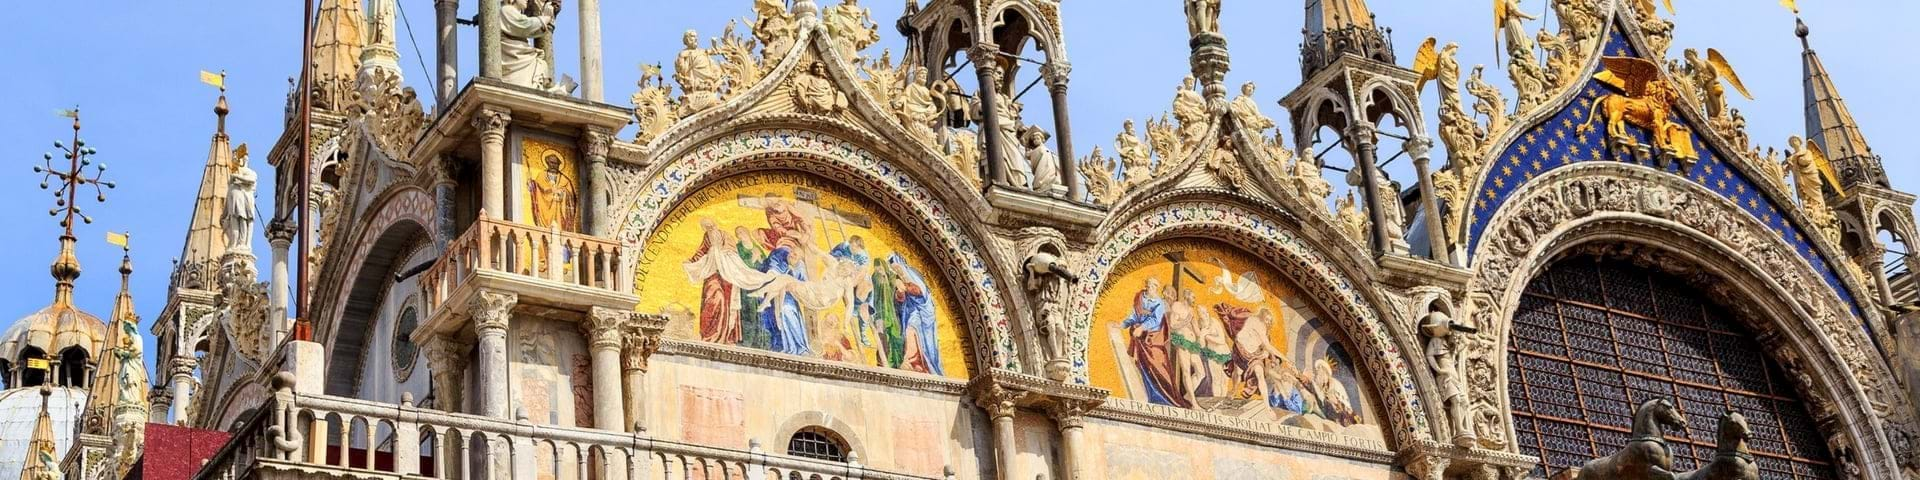 St. Mark's Basilica Tours